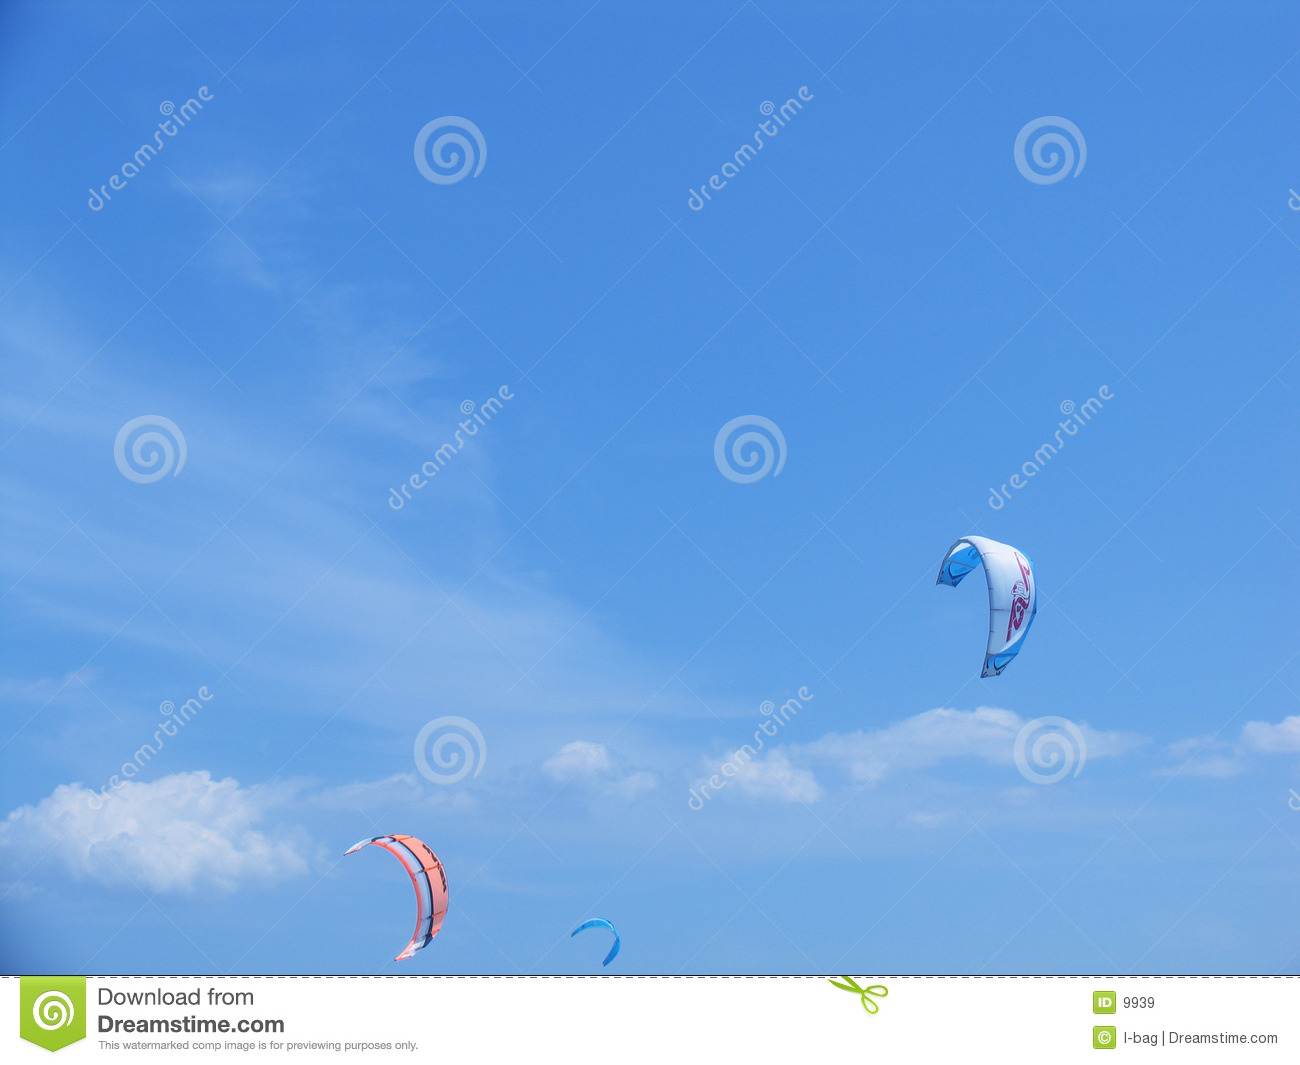 Paragliders via surfing